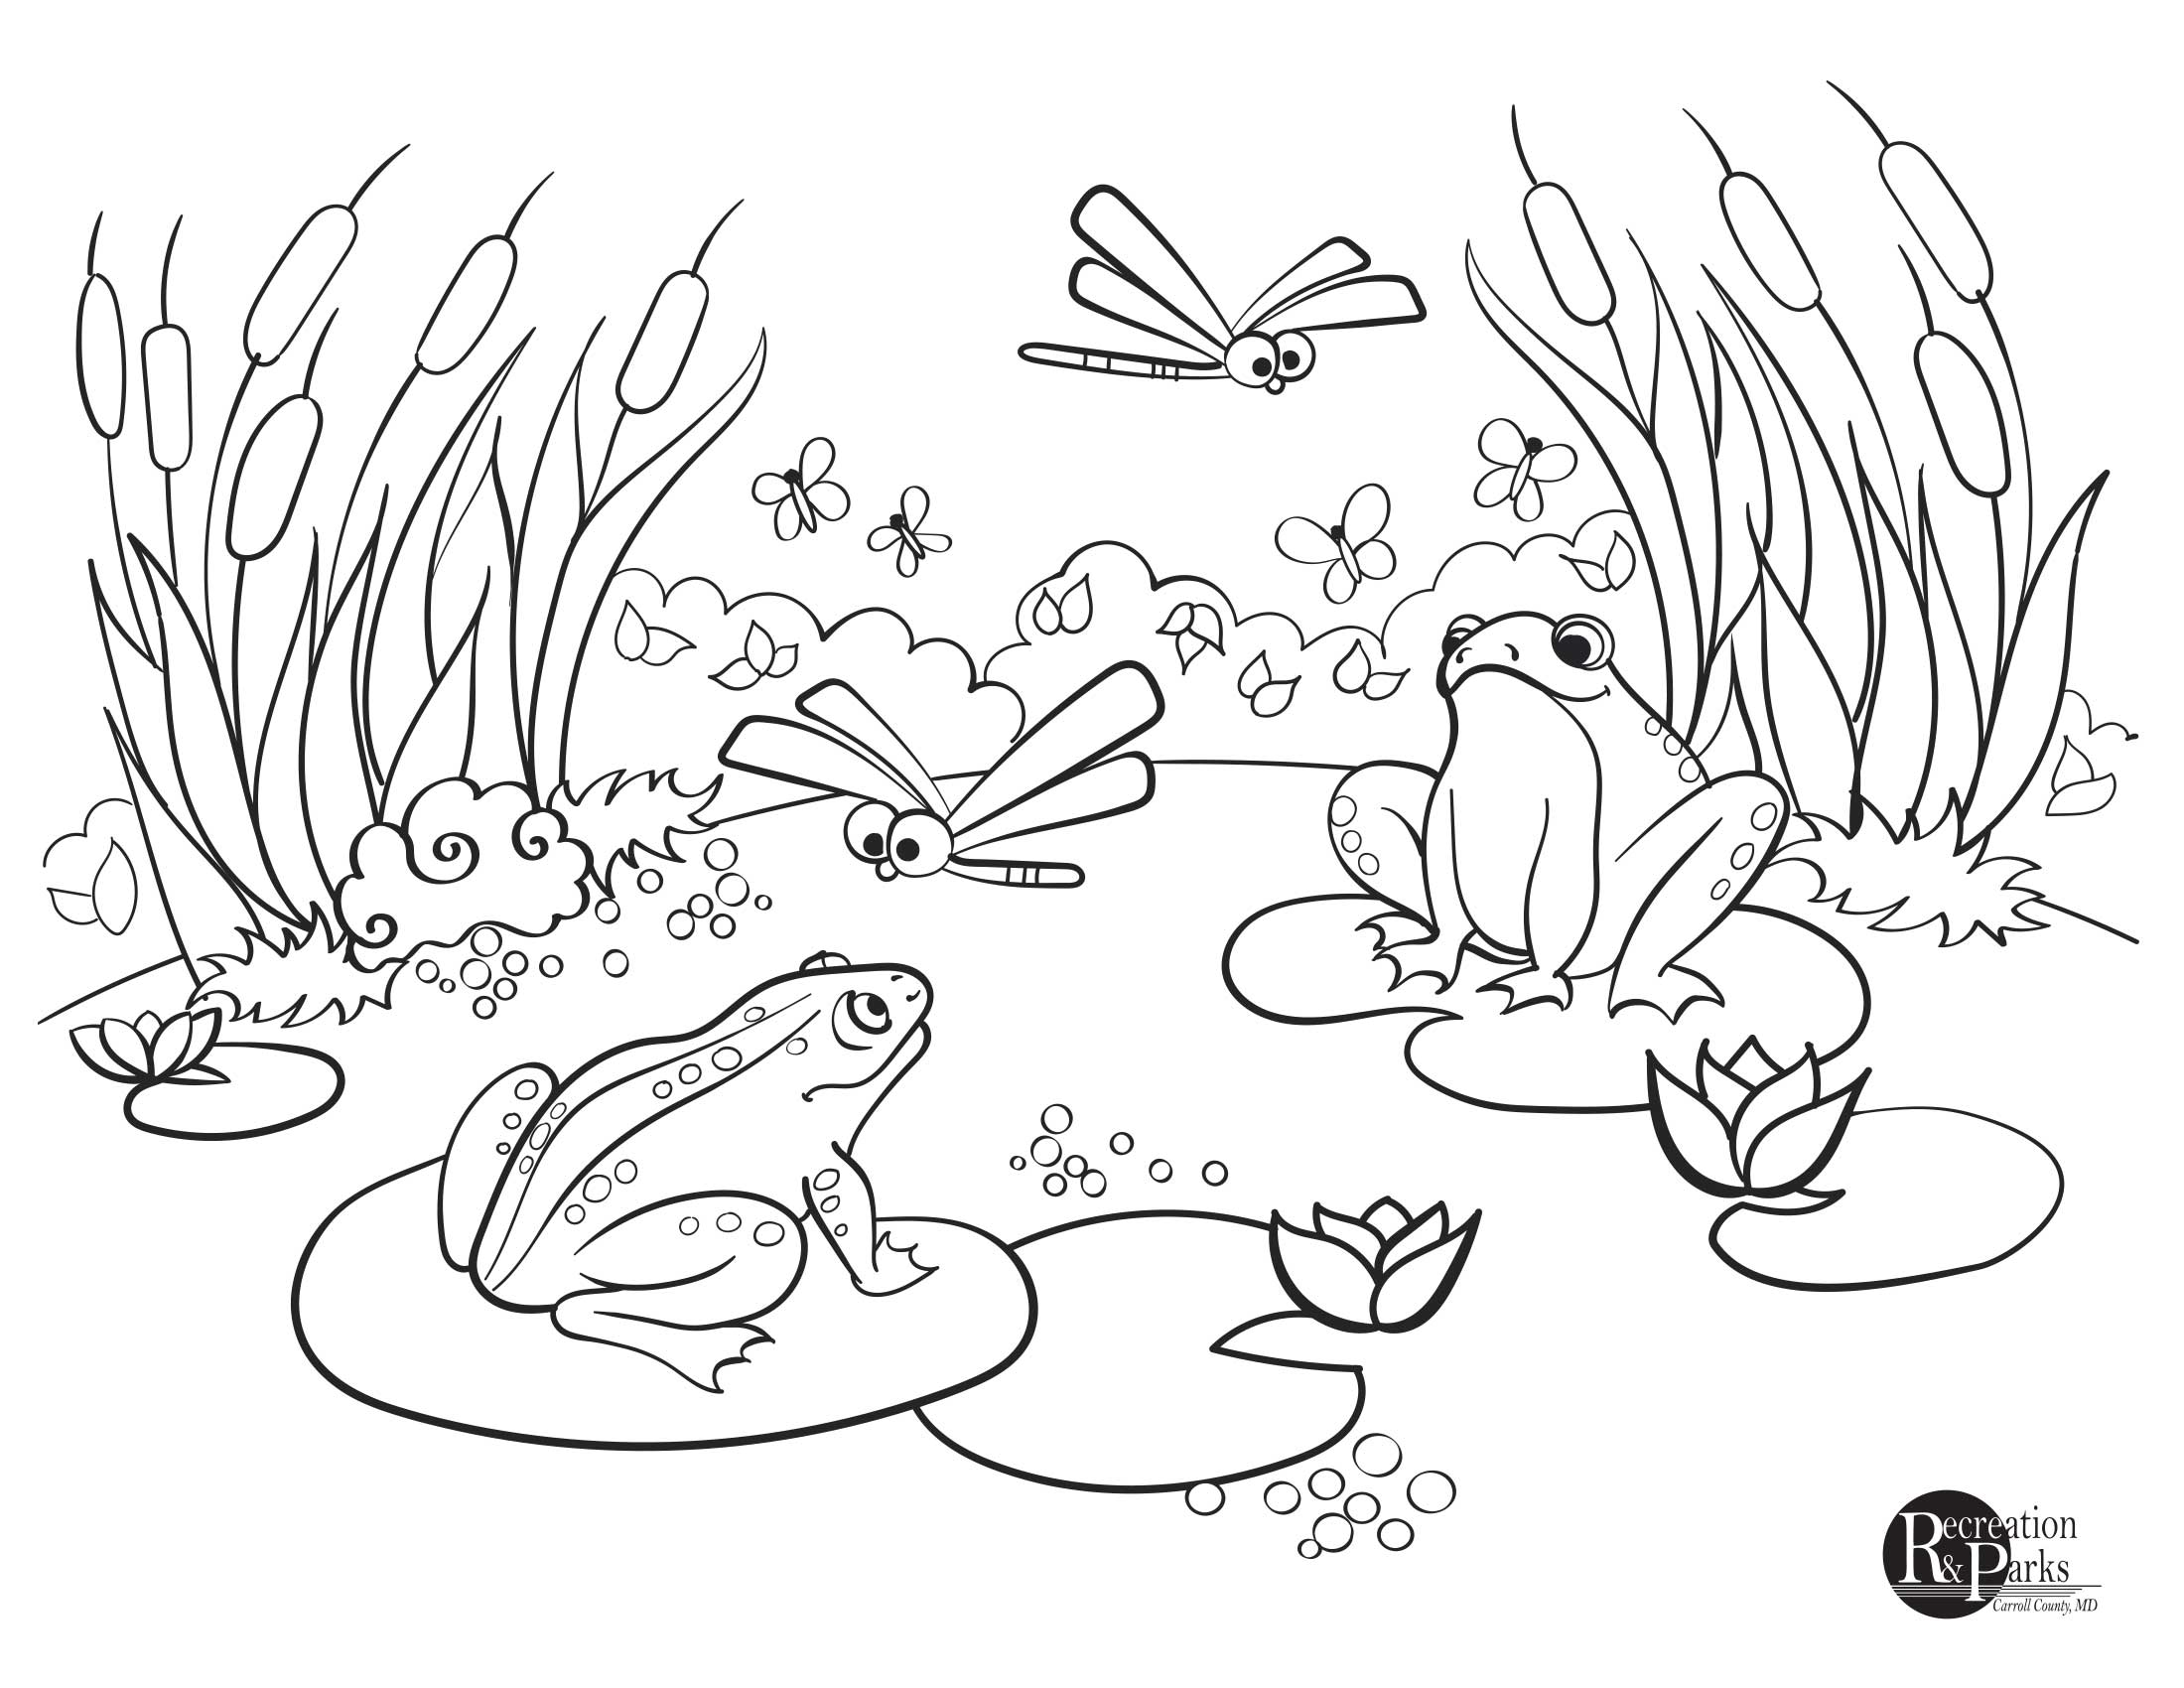 pond coloring page pond coloring pages sketch free printable coloring pages page pond coloring